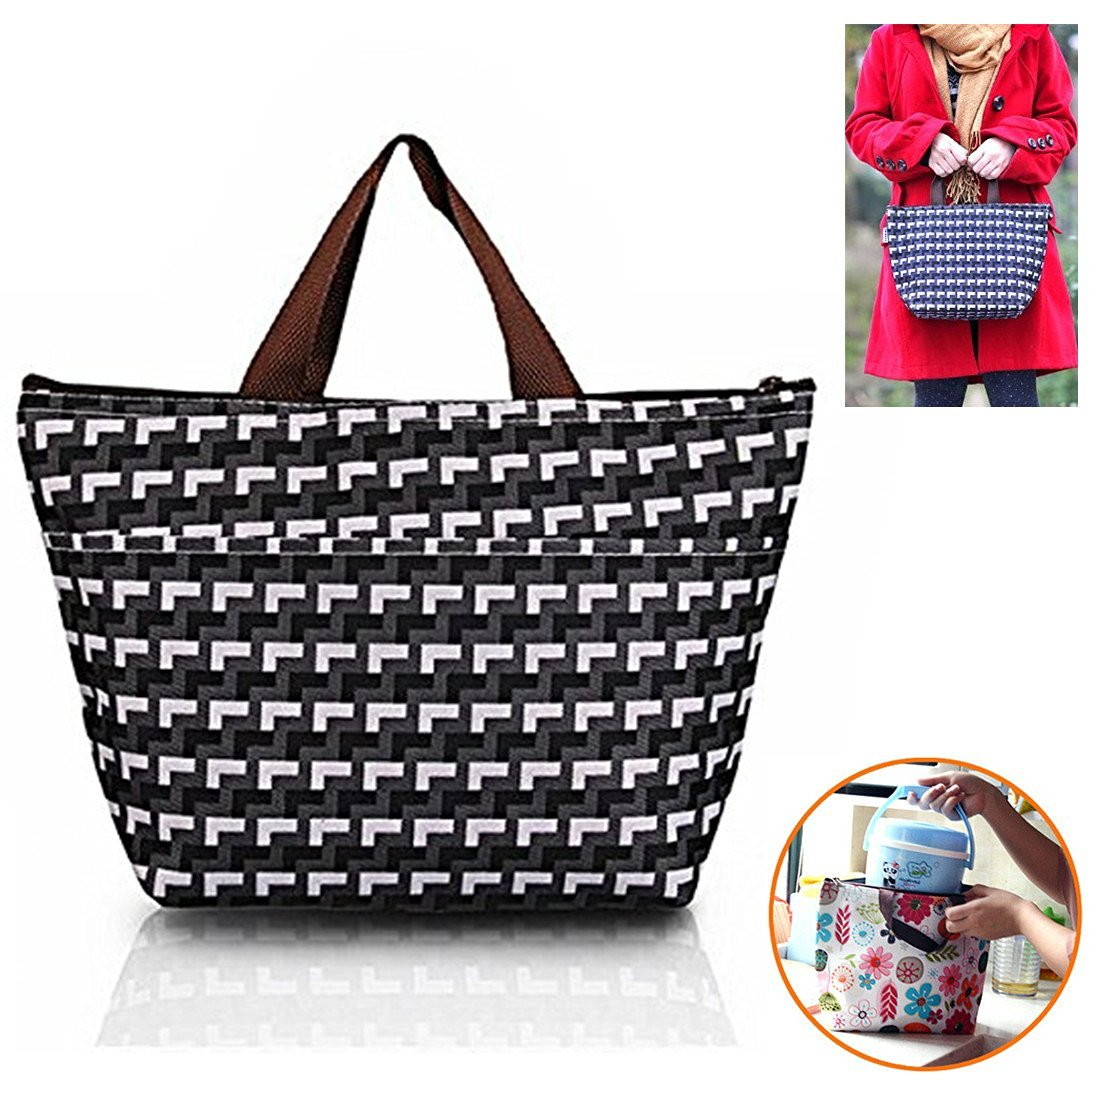 b0f794212eb0 Cheap Canvas Insulated Lunch Bag, find Canvas Insulated Lunch Bag ...